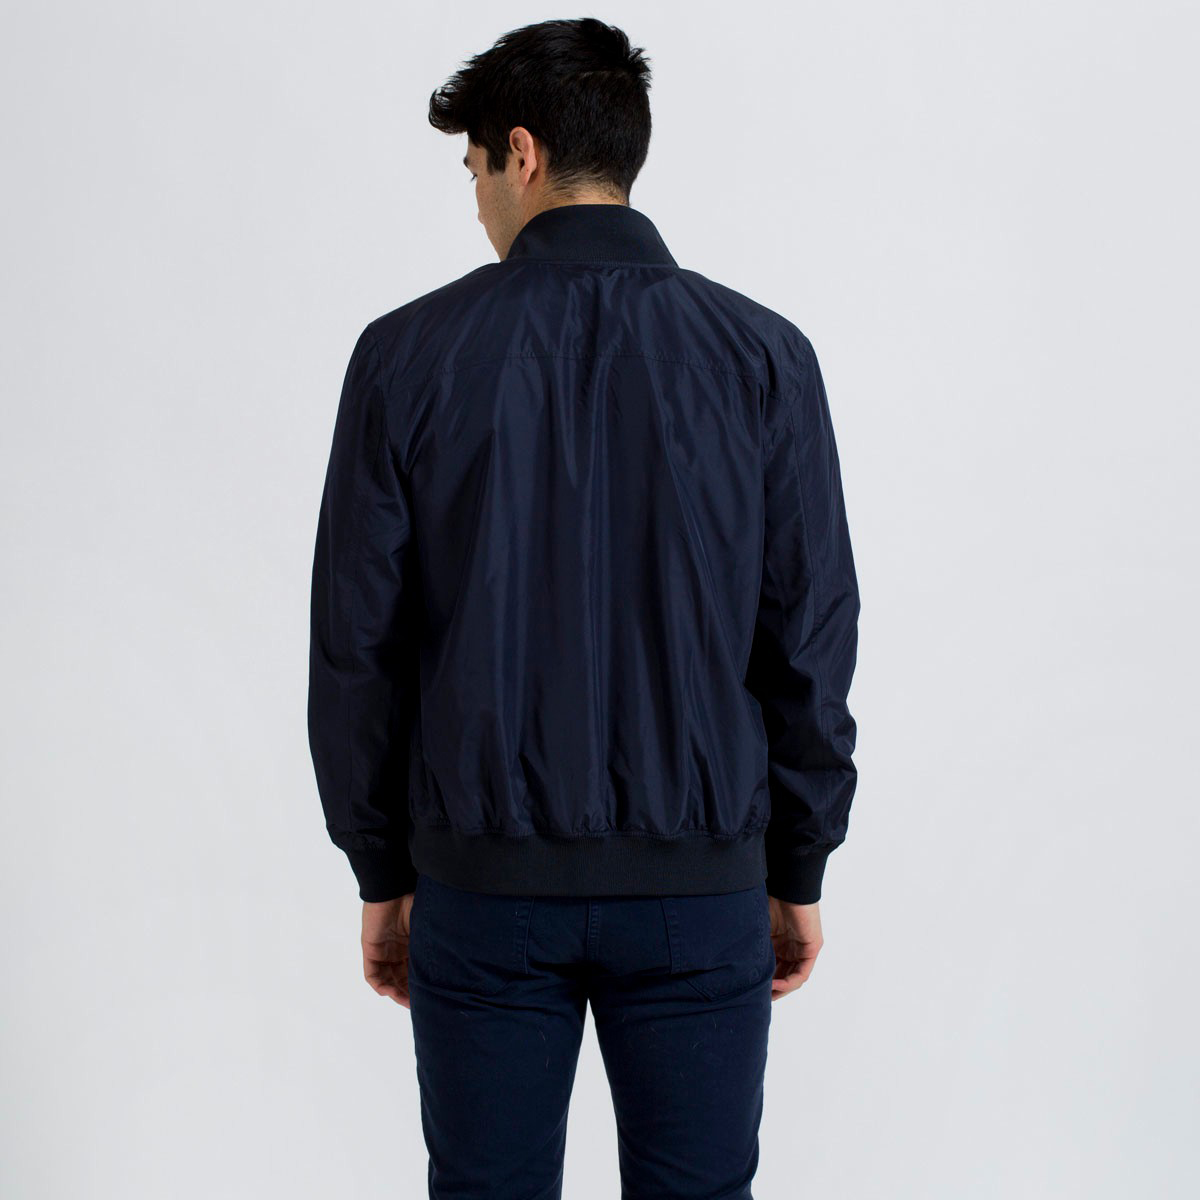 everlane-lightweight-bomber-jacket-2